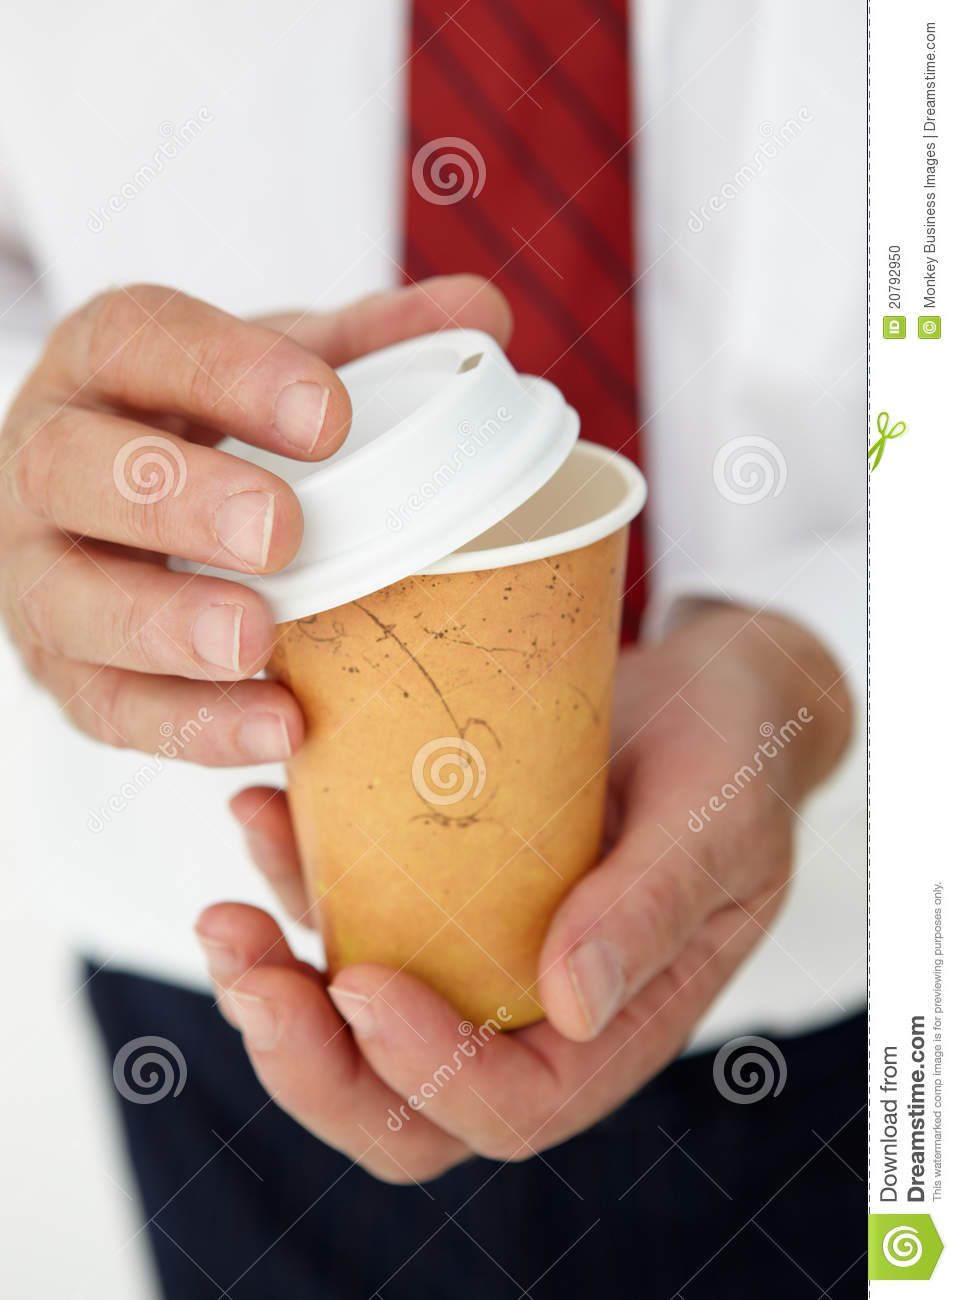 Technology Management Image: Businessman Holding Takeout Coffee Stock Photo